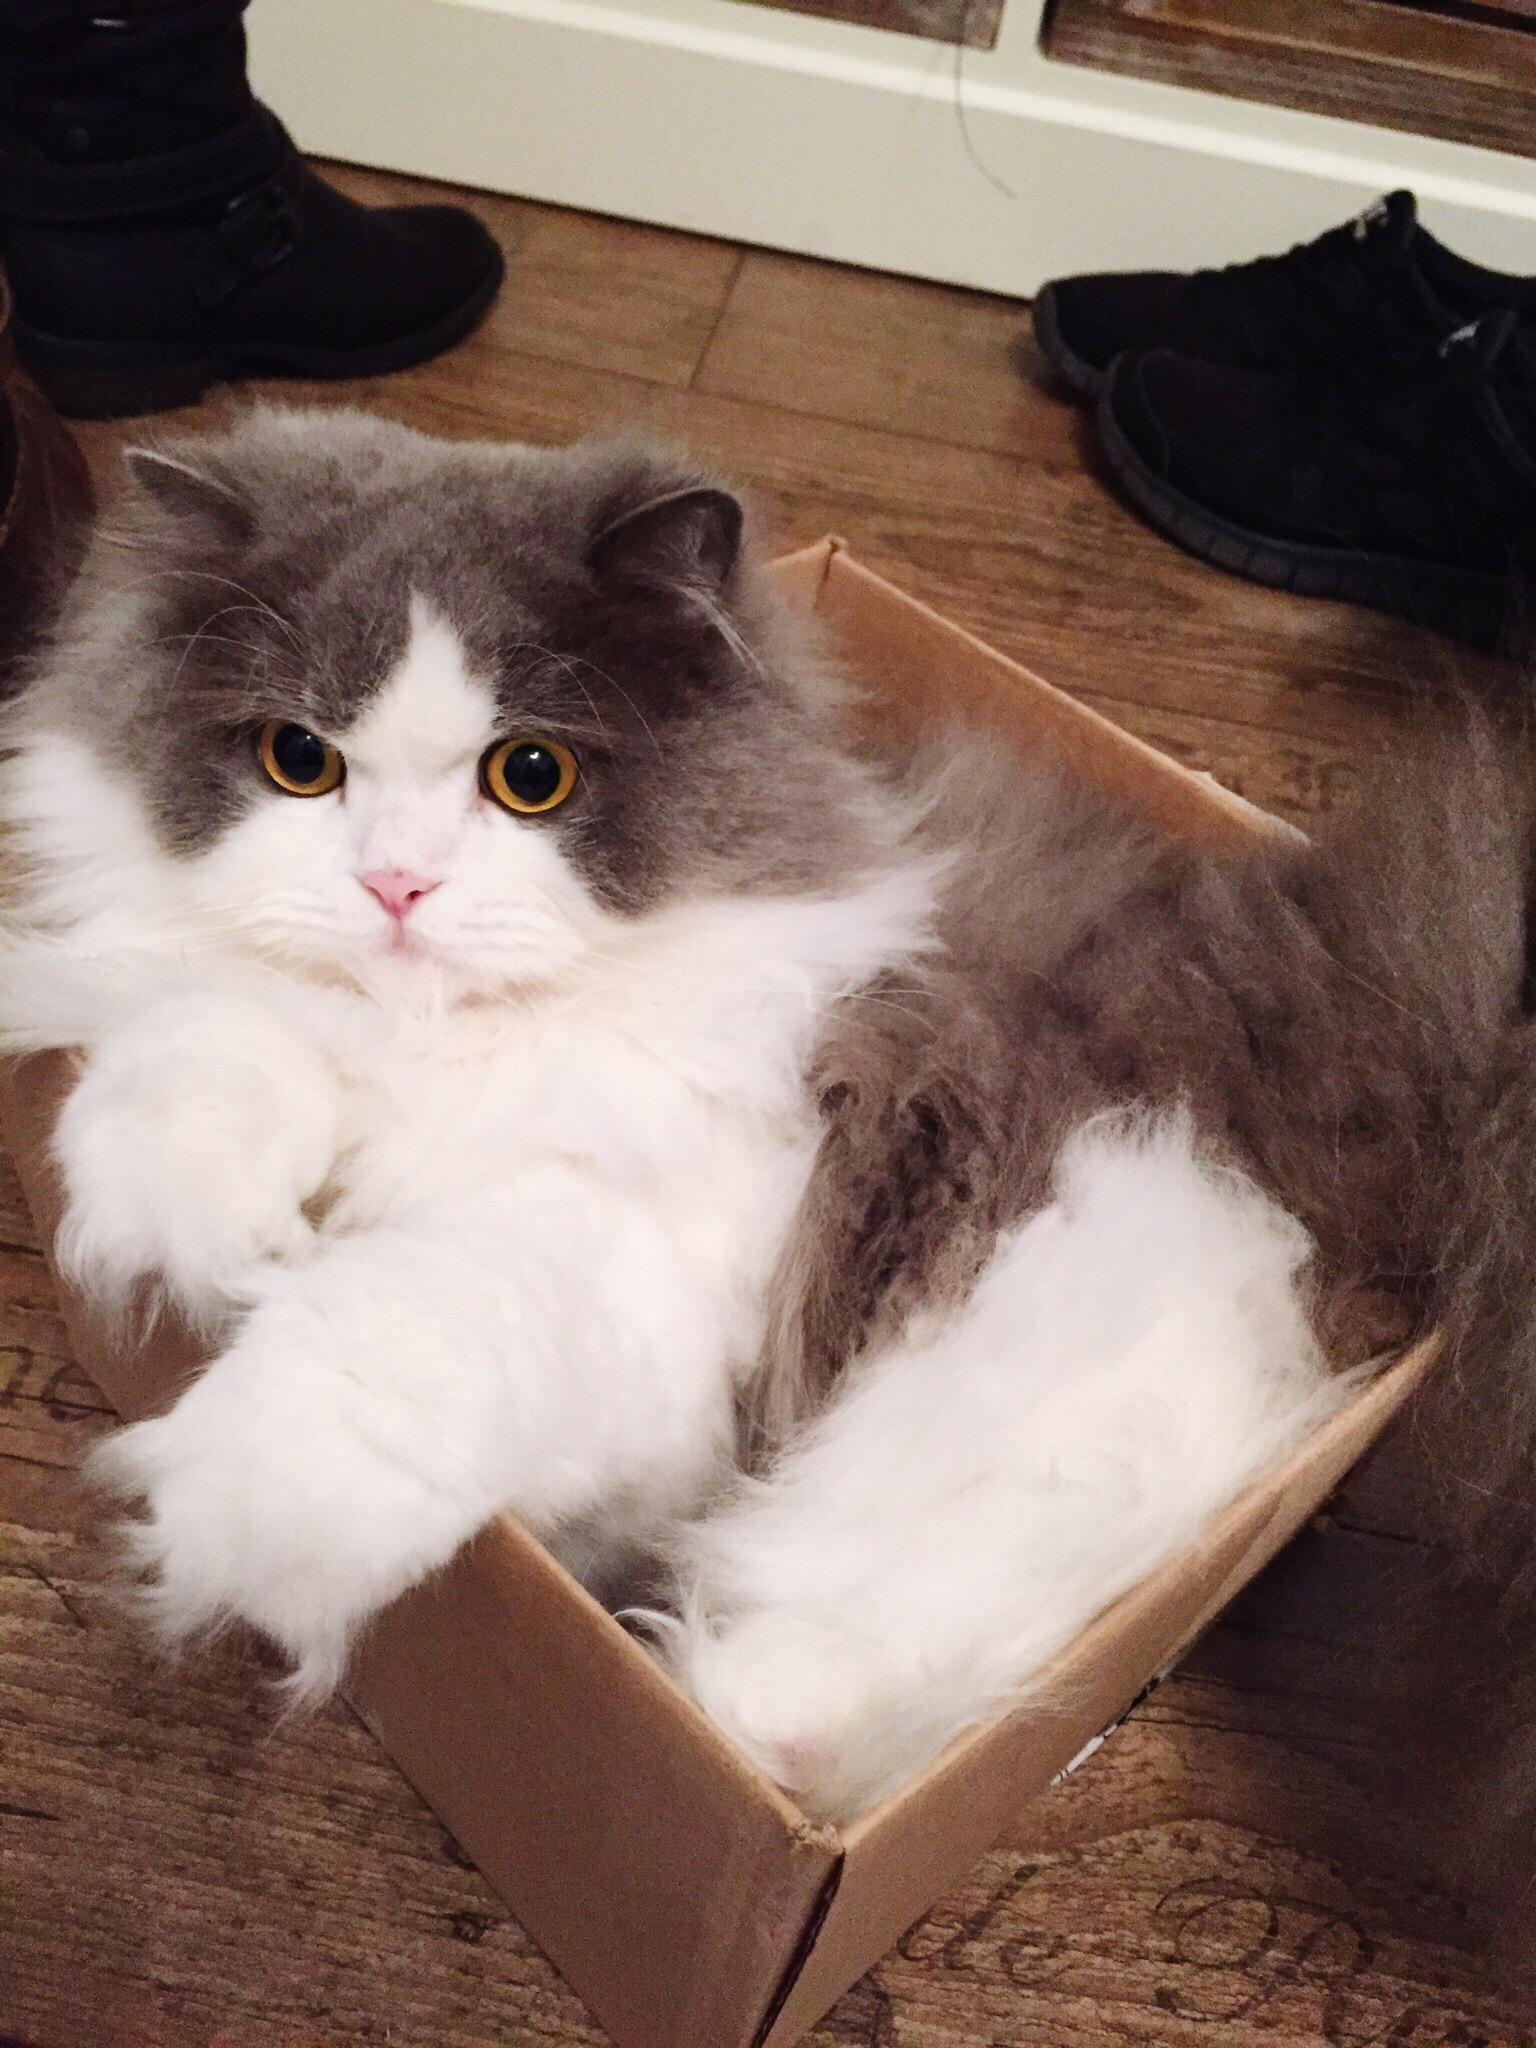 White and gray cat sitting in cardboard box.